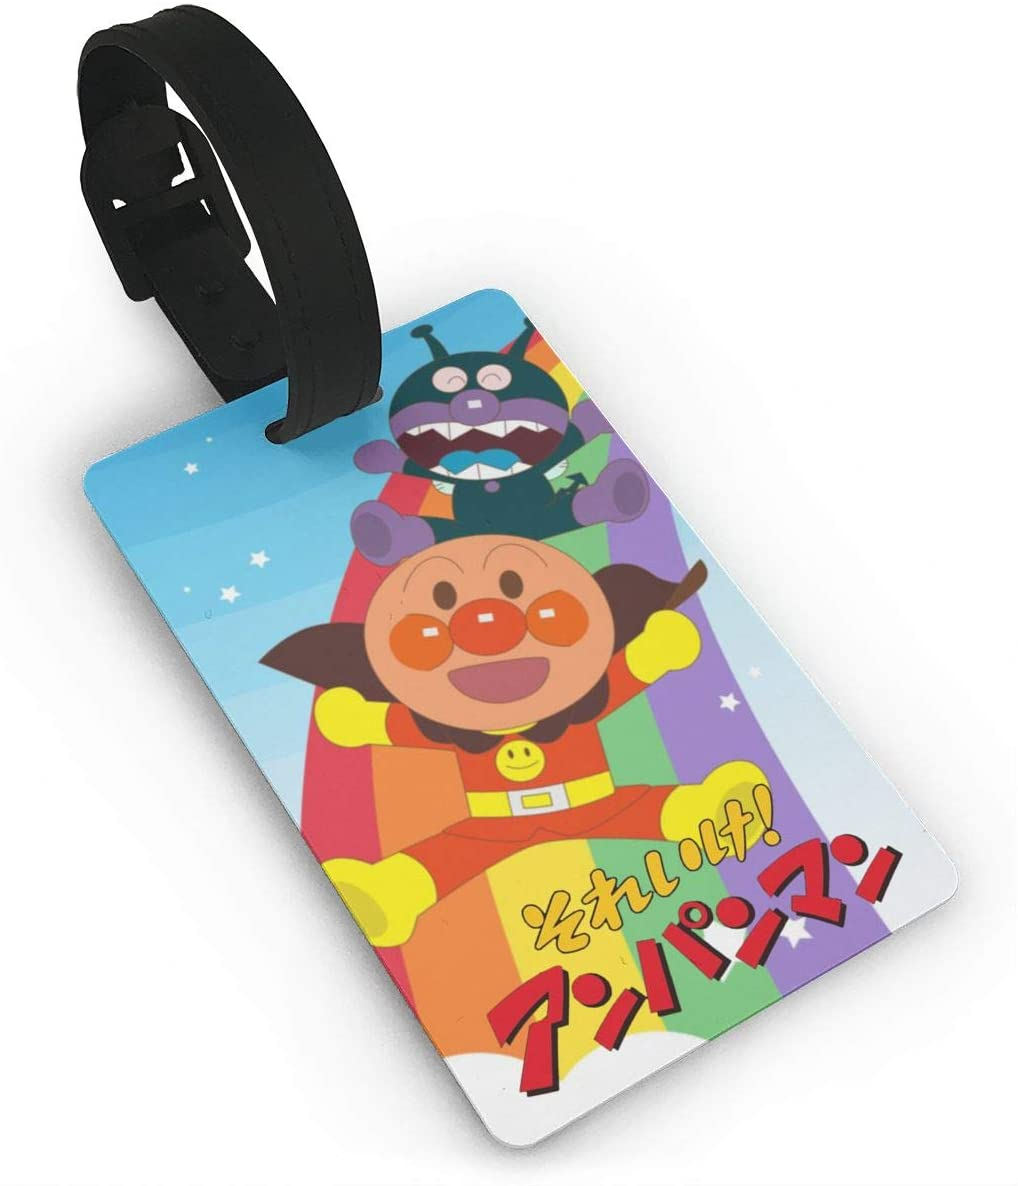 Pooizsdzzz Anpanman Luggage Tags is PVC Material, Durable Very Suitable for Men and Women in Luggage